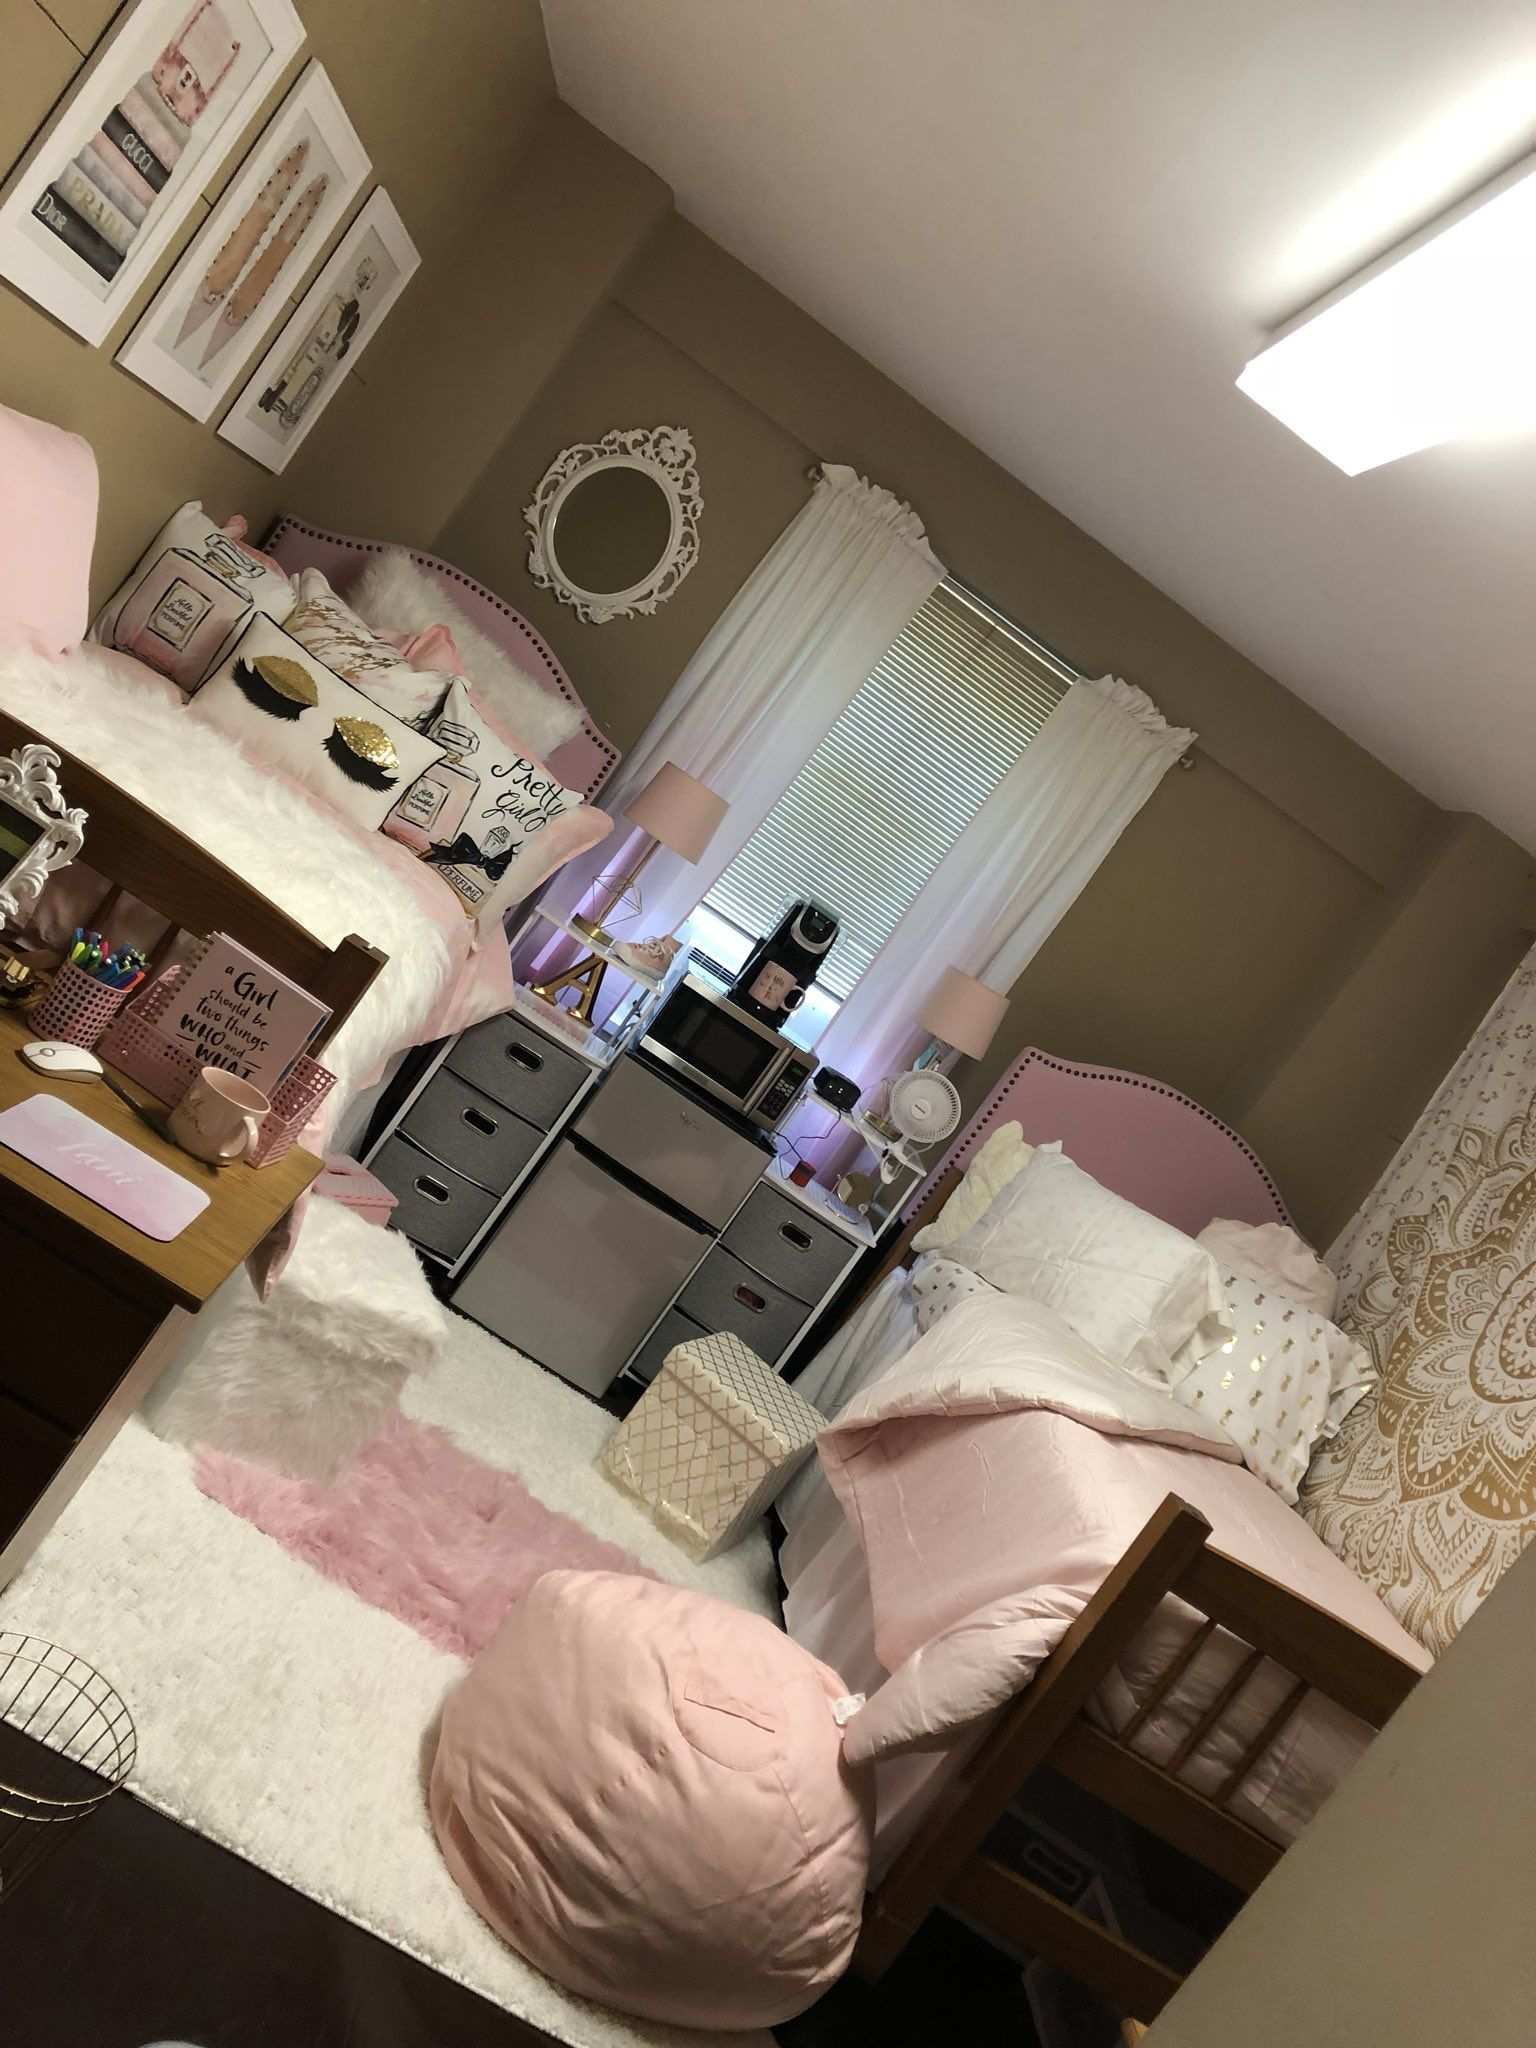 Cute Pink White Gold Dorm Room Uncg College College Dorm Room